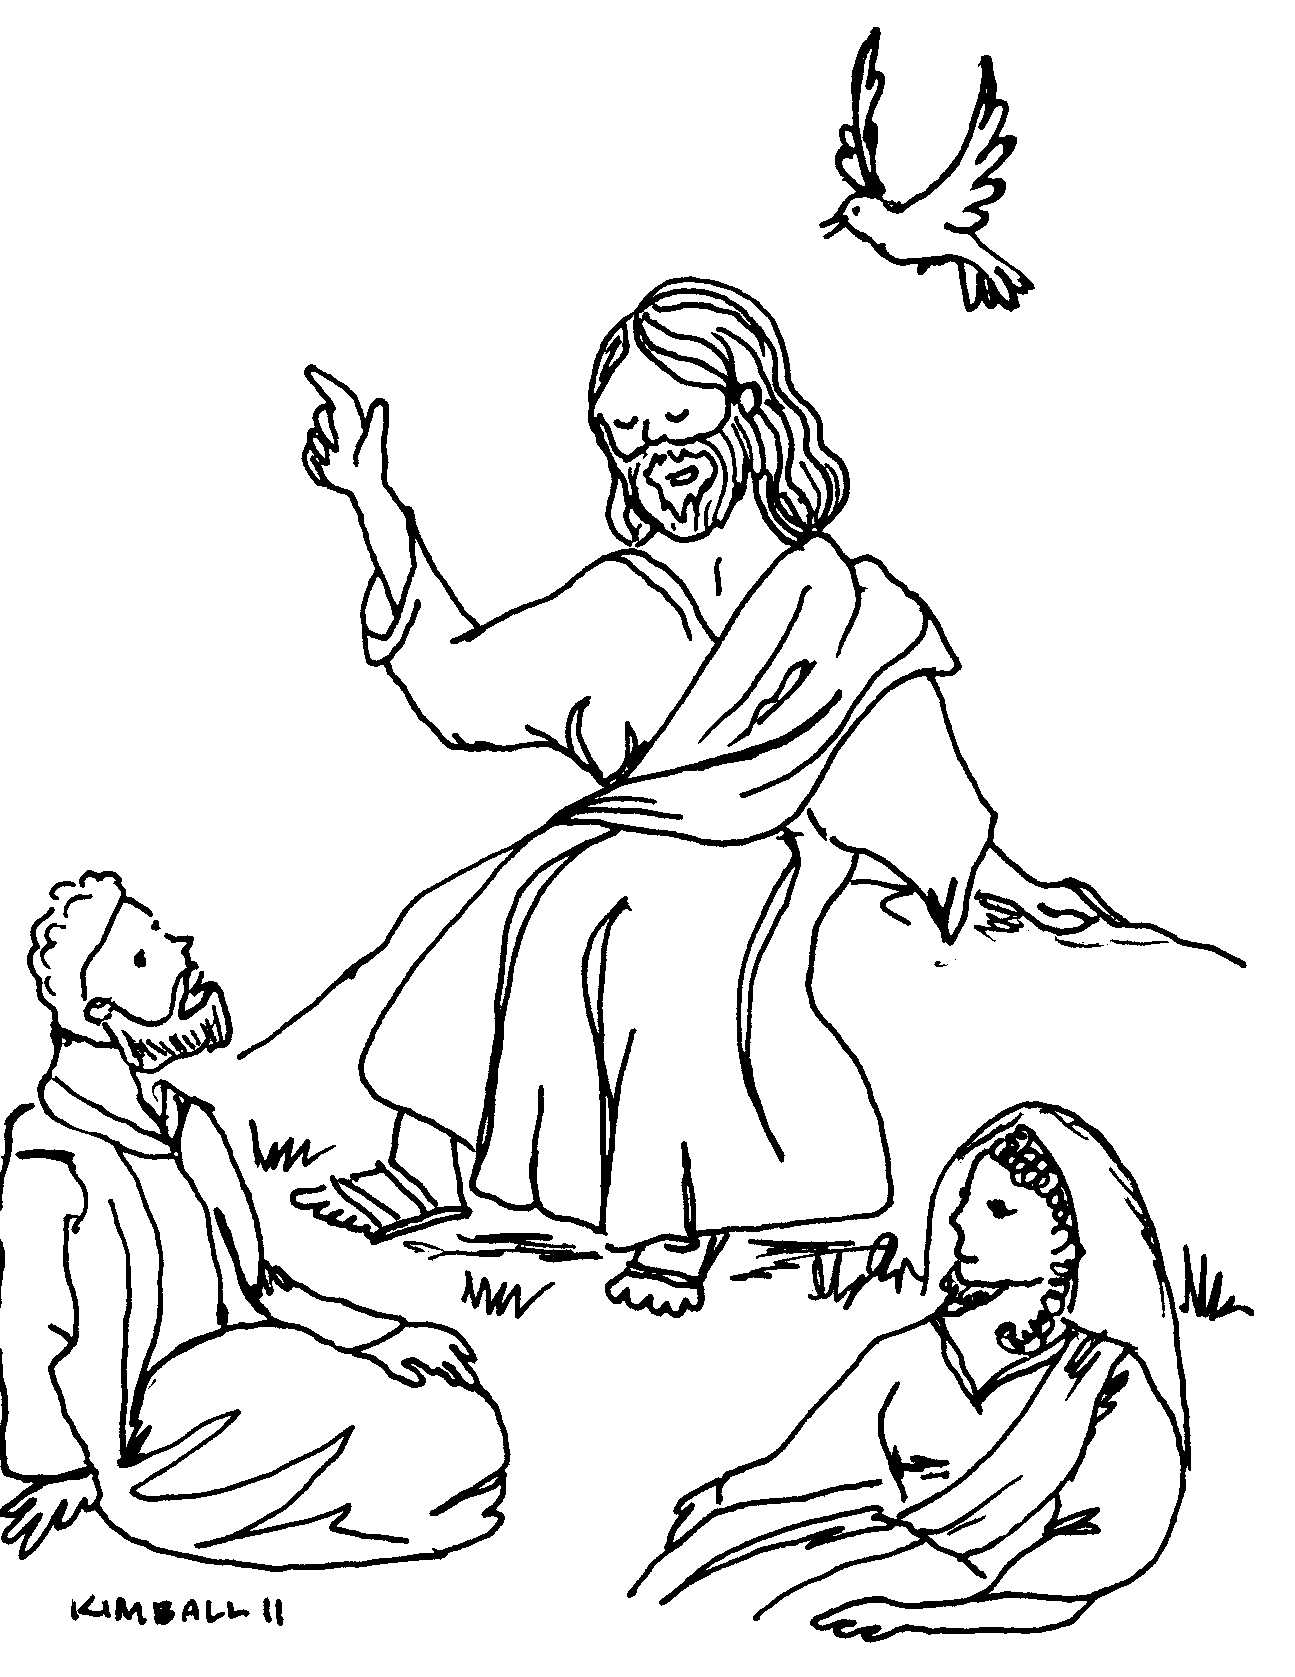 the beatitudes coloring pages - photo#33